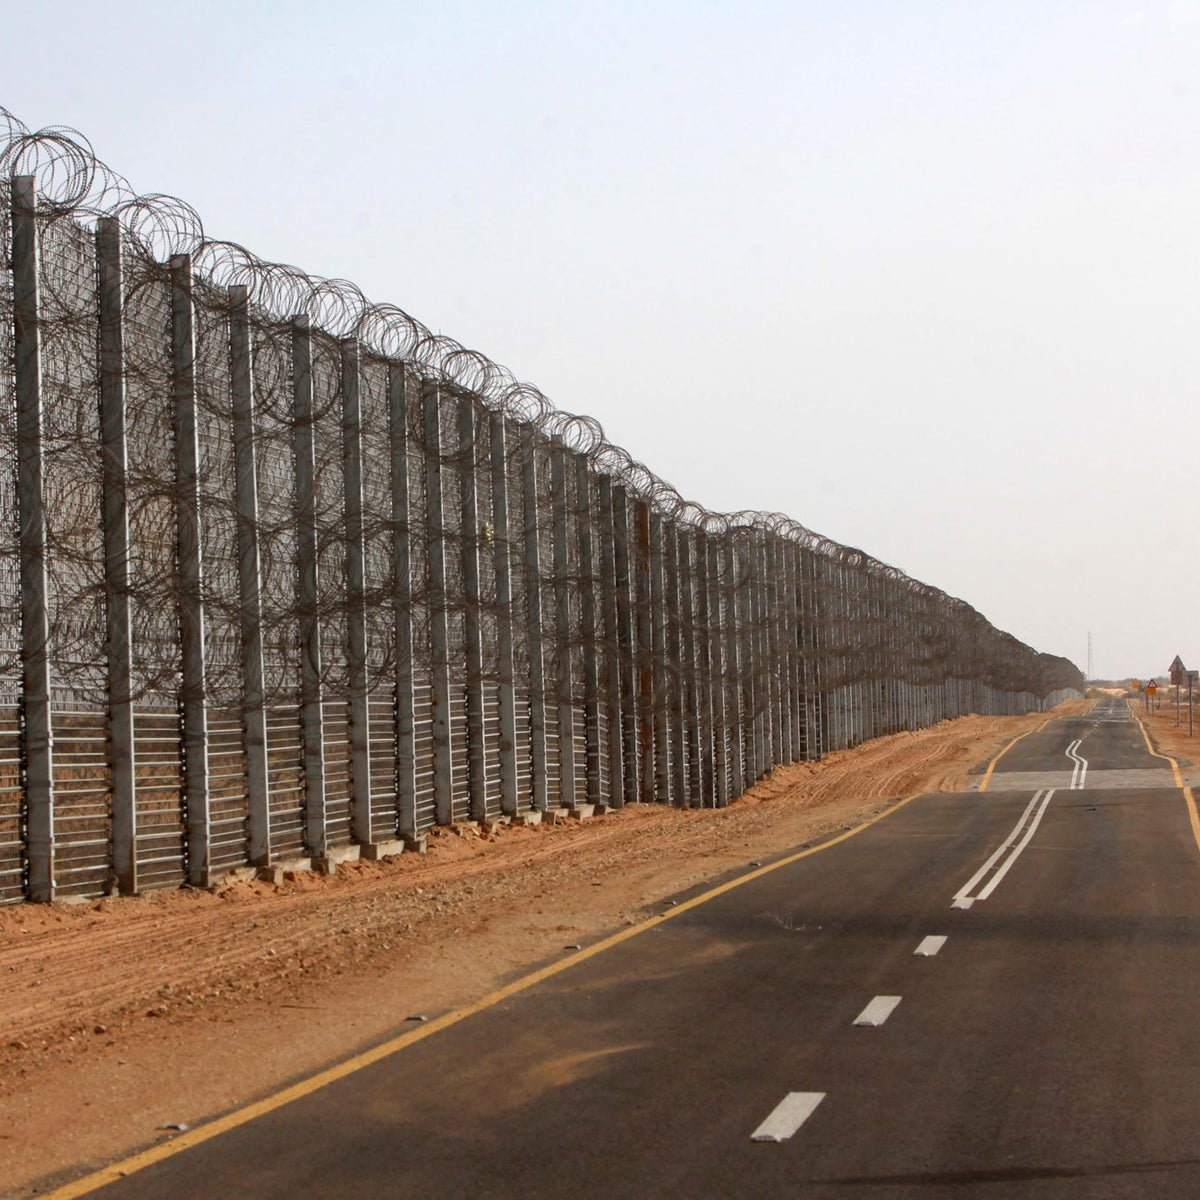 The large metal barrier that protects 30 kilometers of the Israeli-Jordanian border.